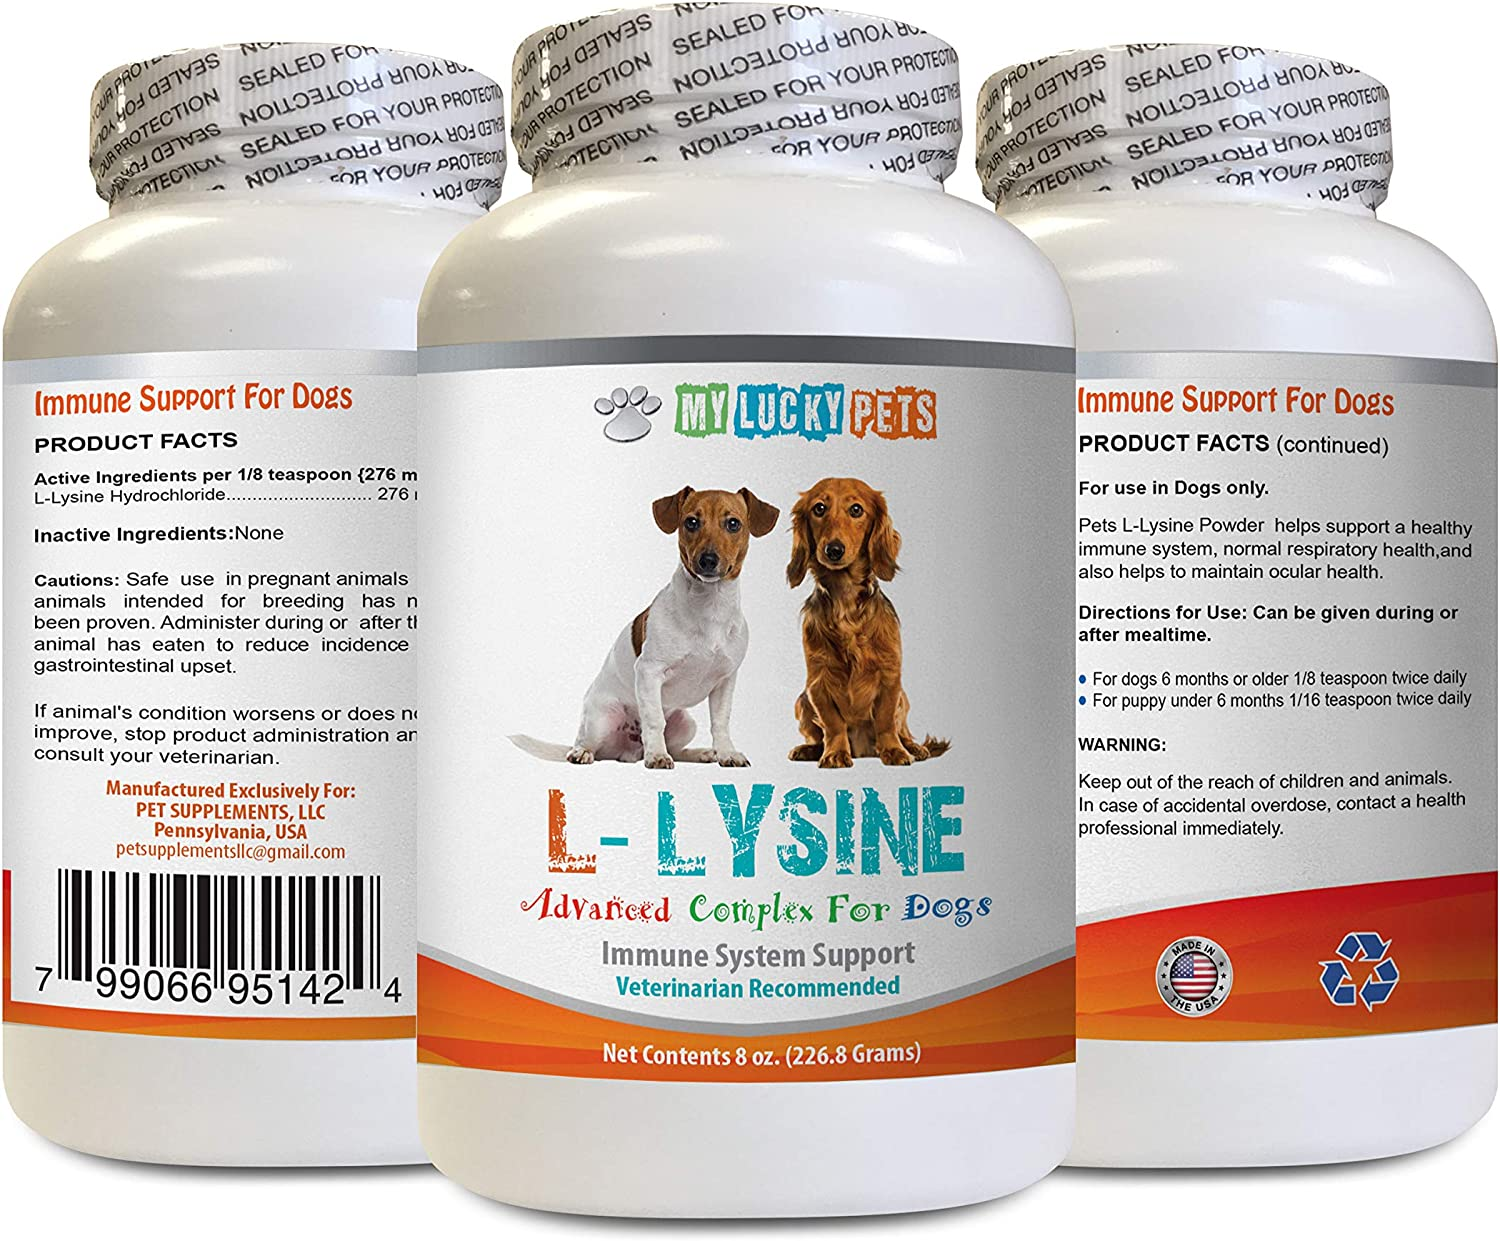 MY LUCKY PETS LLC Dog Immune Boost - Dog LYSINE Powder - Pure Powder Form - Immune System Support - Vet Recommended - lysine Supplement for Dogs - 1 Bottle (8oz 226.8 Grams)